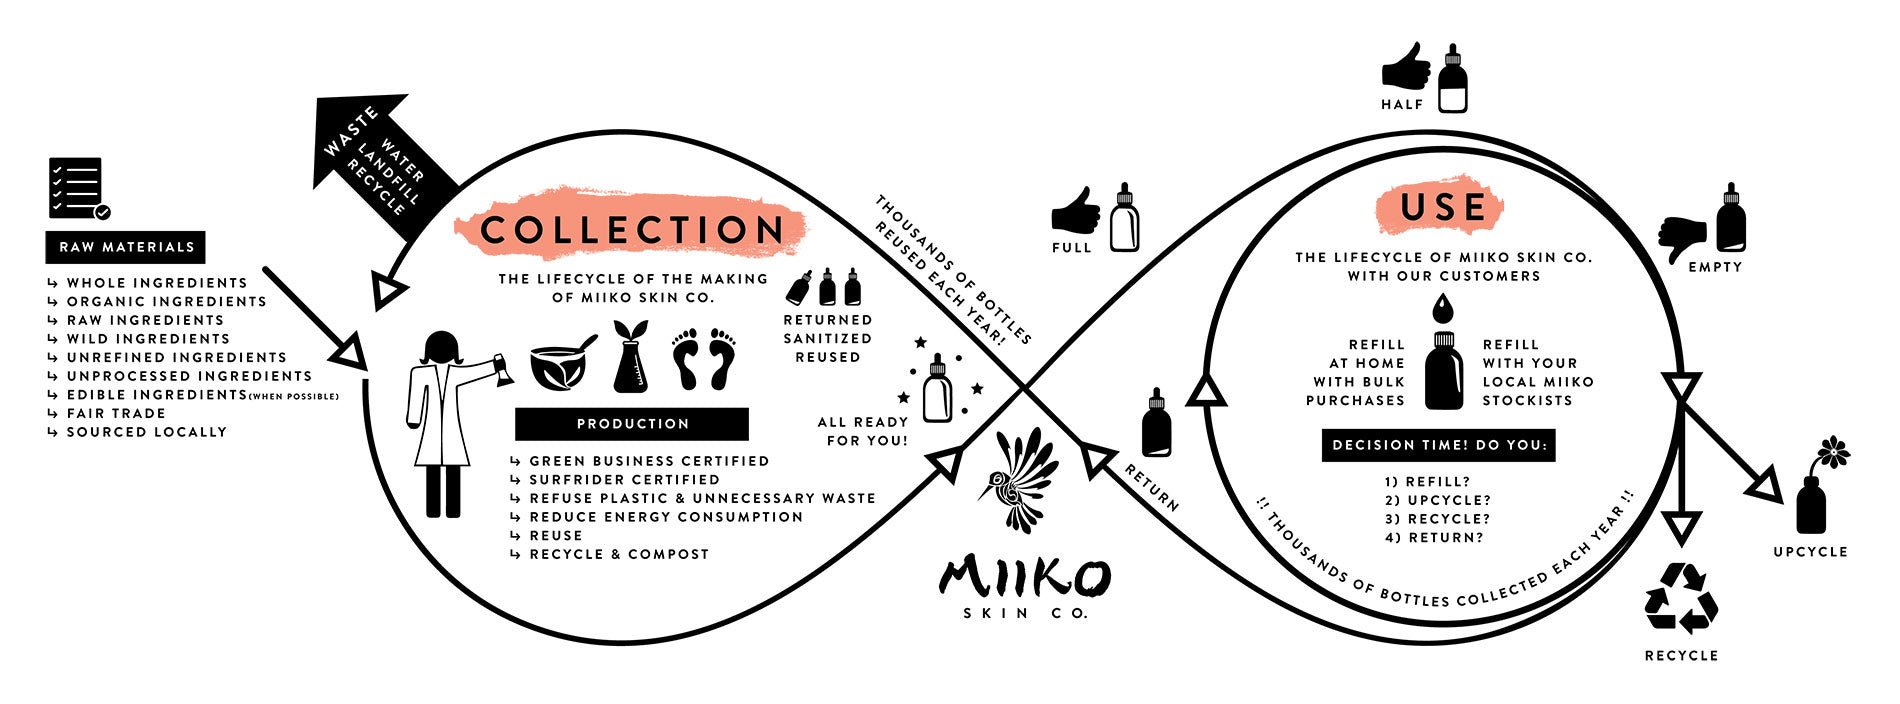 miiko skin co sustainability flow and cycle